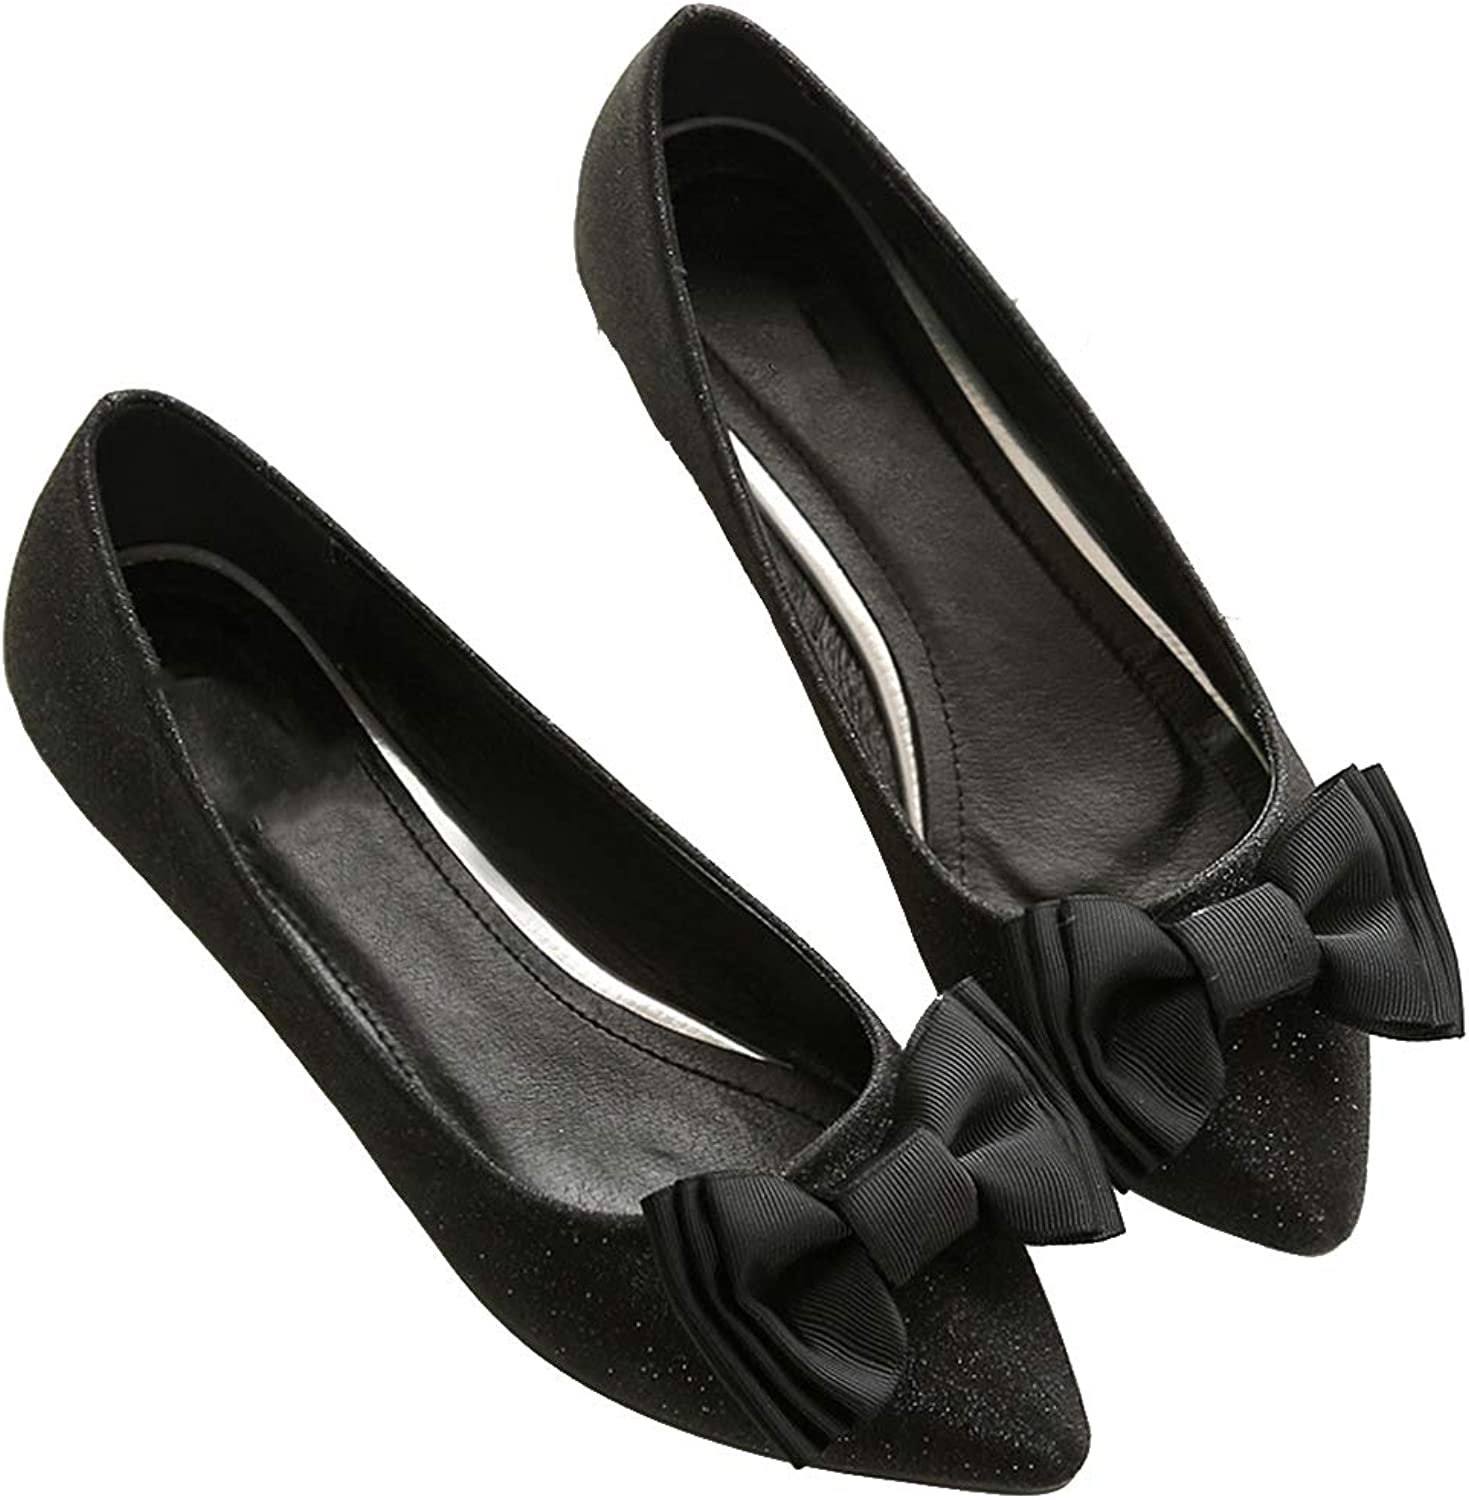 Kyle Walsh Pa Women Elegant Flats Pointed Toe Slip-on Bow Knot Design Female Party shoes